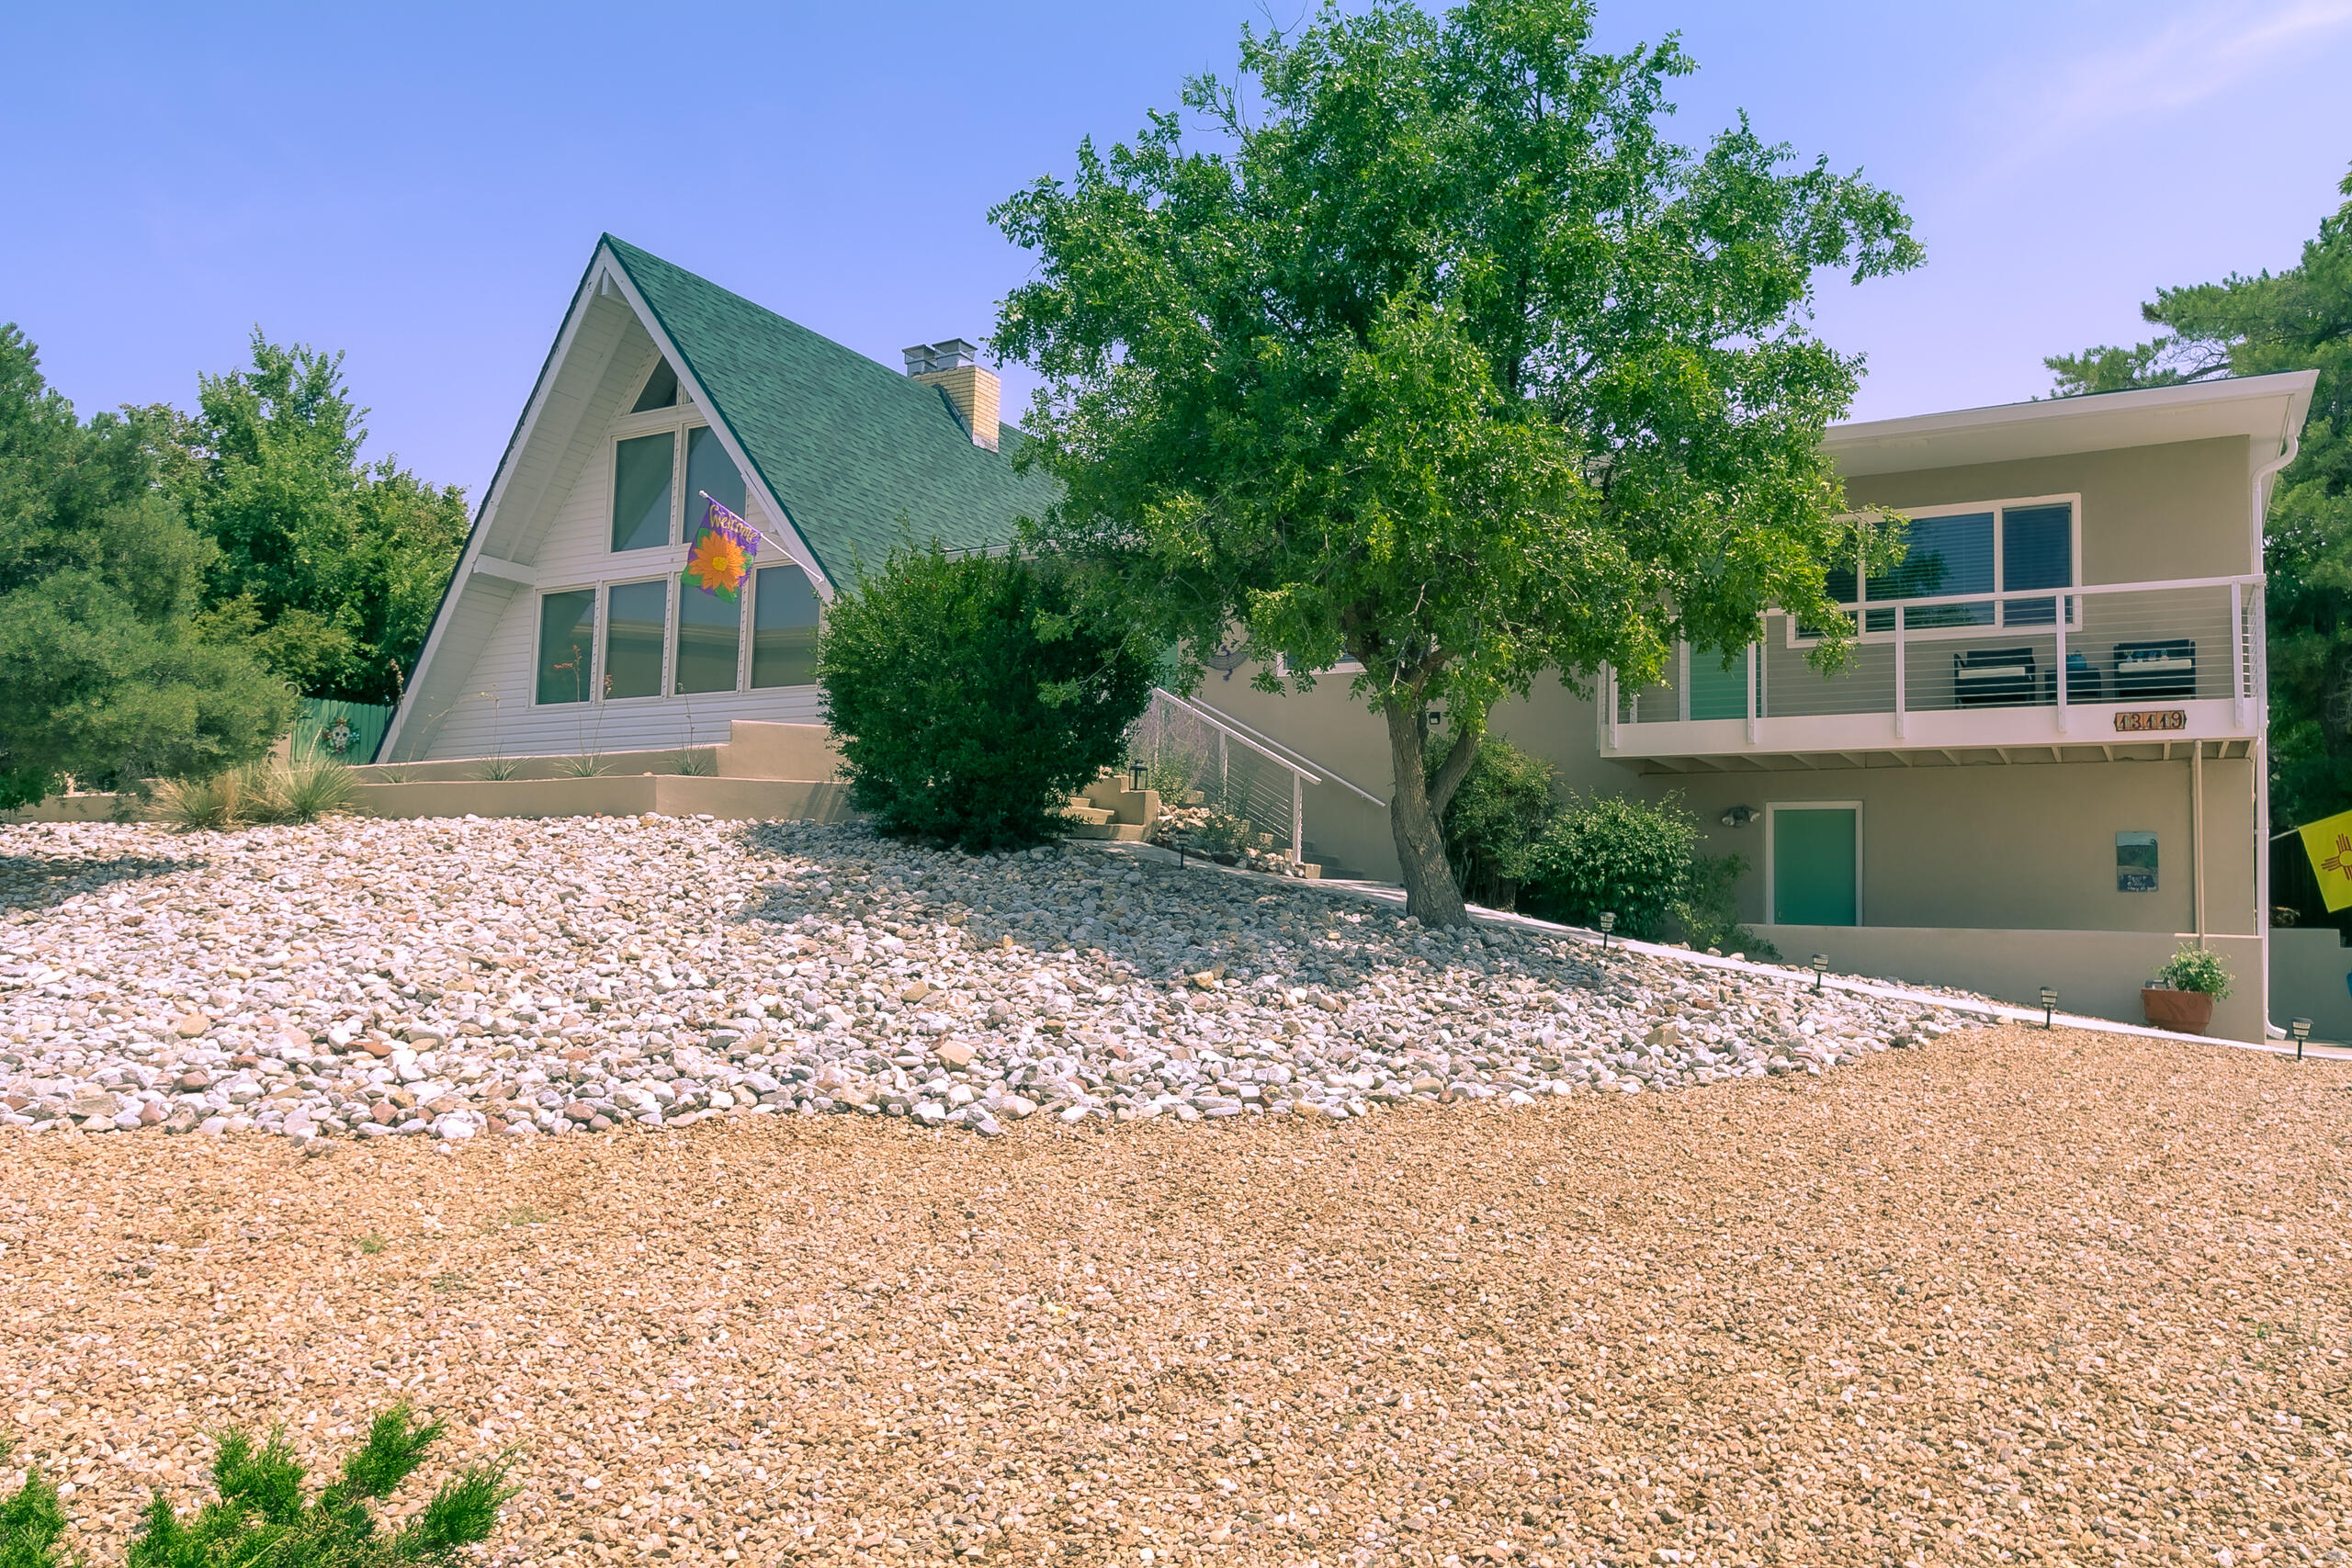 In the Foothills of ABQ located in popular Glenwood Hills is this beautiful home w/stupendous views on a .30 acre lot! The heart of the home is the living room w/soaring, beamed, tongue-&-groove cathedral ceiling, expansive wall of windows, & FP w/bookcases. Fam room & loft provide cozier, quieter escapes. Din room adjacent to kitchen w/stainless-steel appliances. MBR w/plentiful closet space, full bath & private view deck. Two addl bedrms served by full bath w/dbl vanity. Oak hardwd floors + tile & carpet. Laundry room (W/D convey!) Two car garage. Professionally landscaped backyard by Red Twig, w/walkways, numerous fruit trees & saltwater hot tub. Recent updates in the last 2 years incl roof; 200 amp elec svc; water heater; refrig A/C; ceiling fans; deck & stair railing; & new gutters.